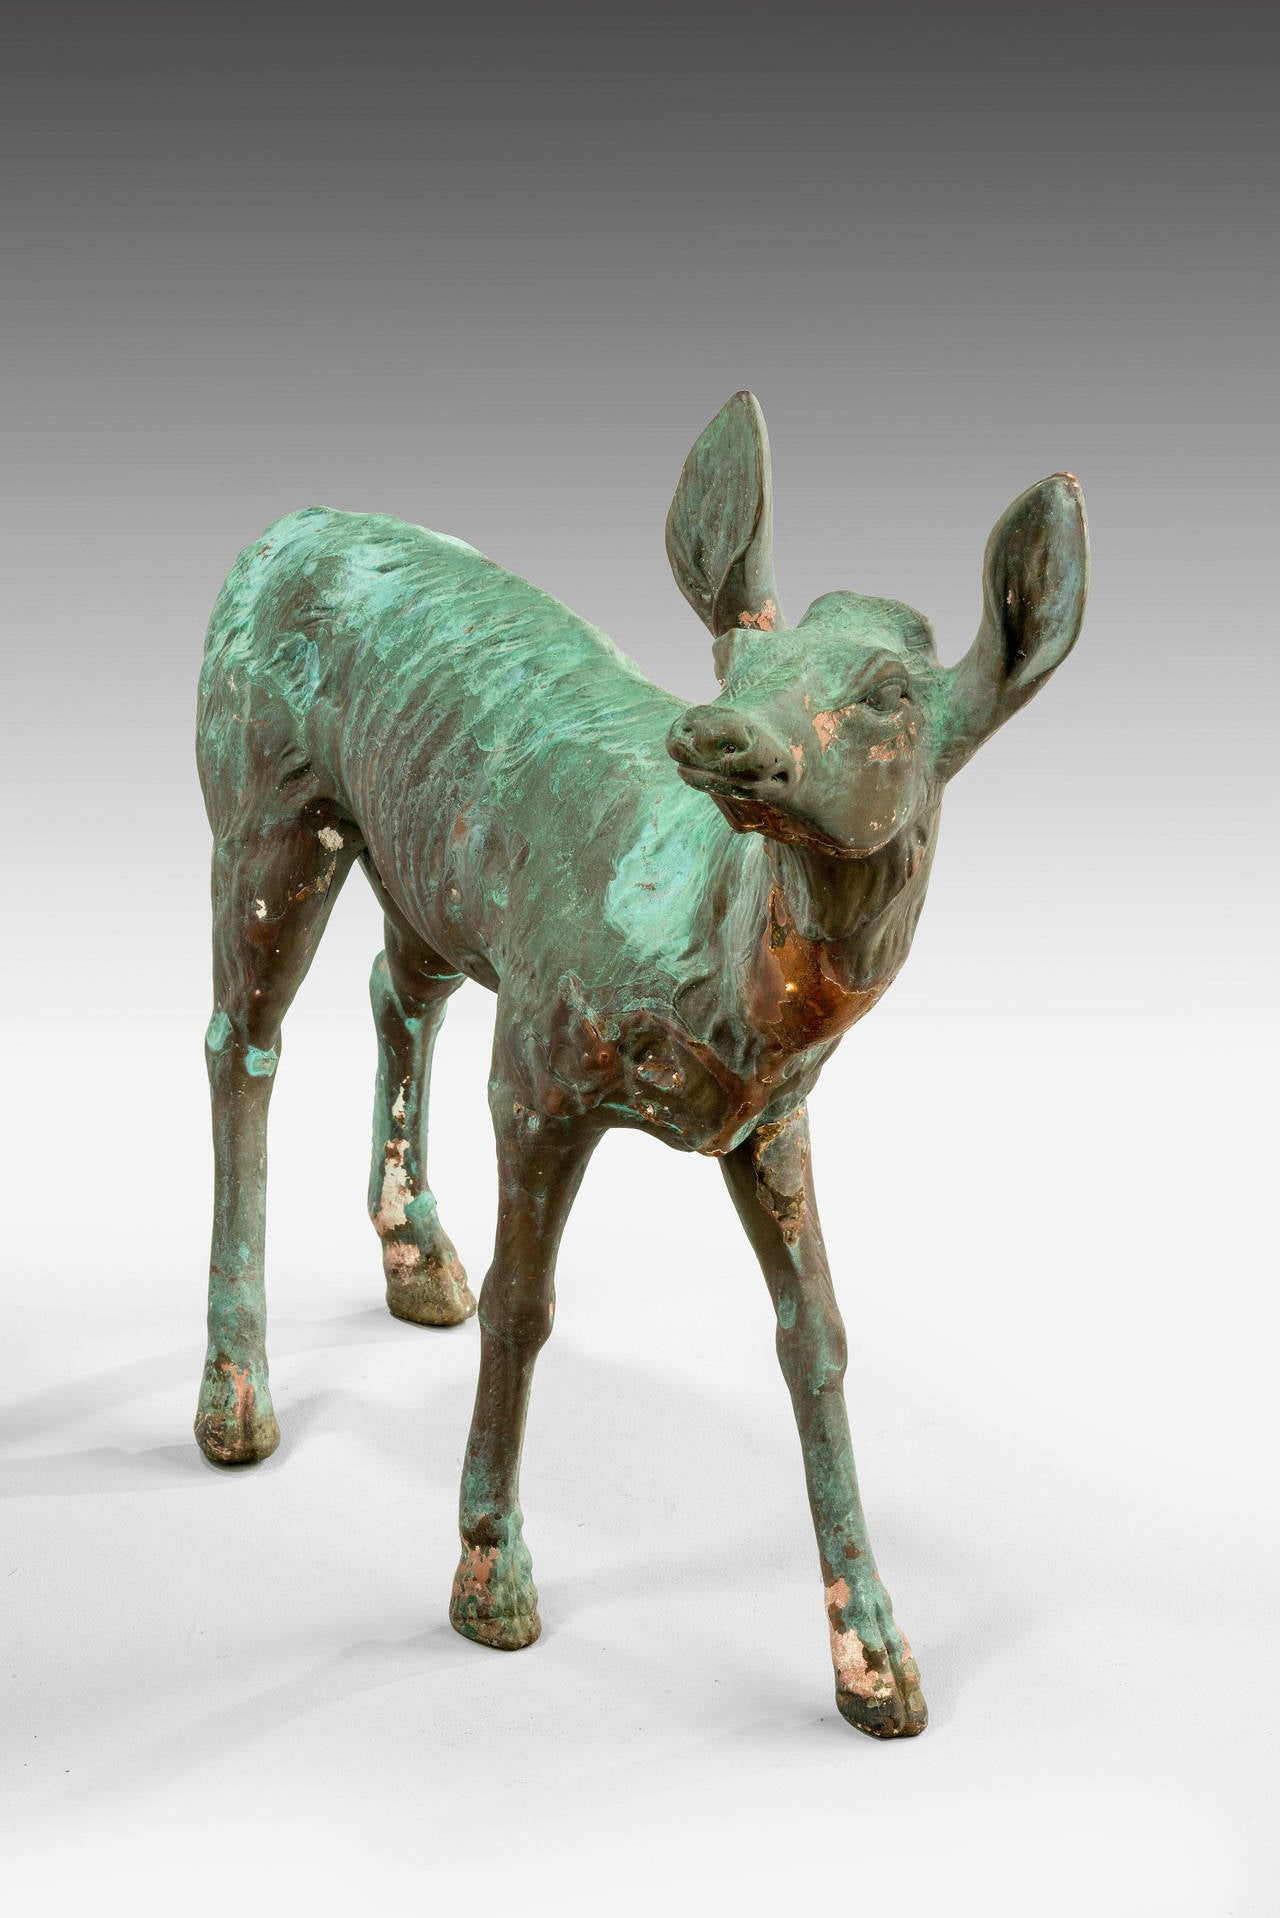 Late 19th Century Bronze Figure of a Fawn In Excellent Condition For Sale In Peterborough, Northamptonshire